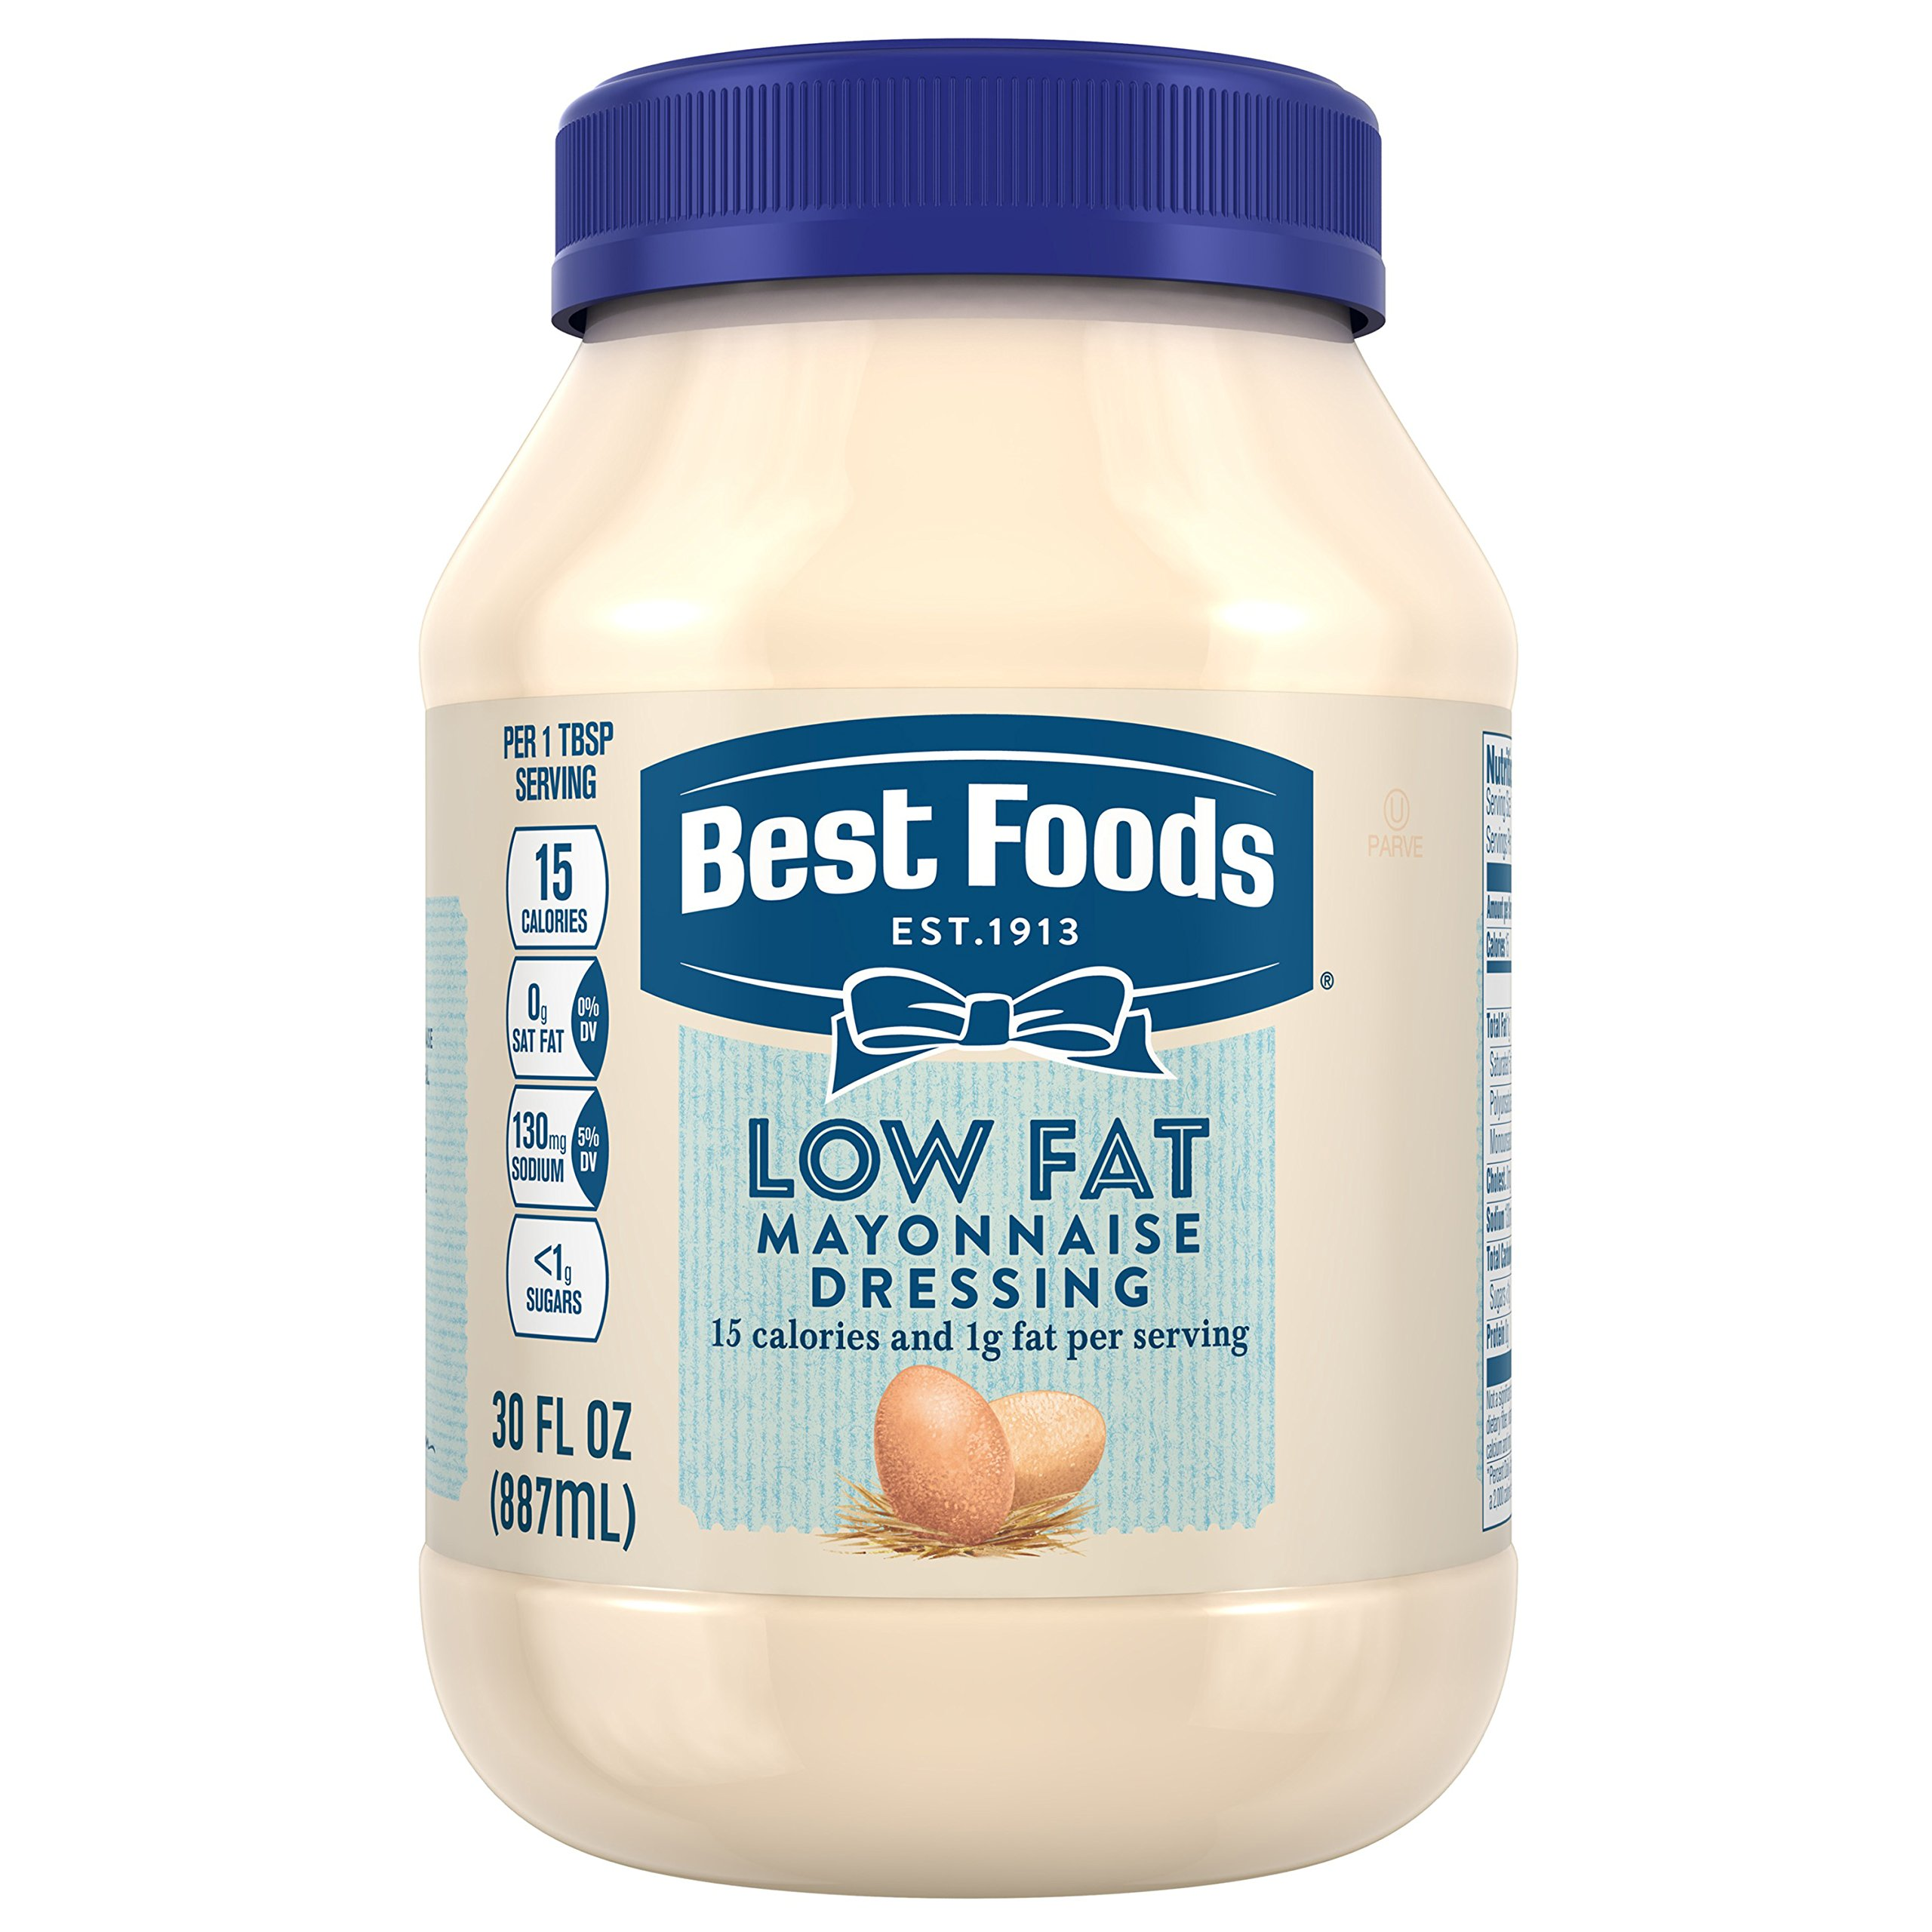 Best Foods Mayonnaise Dressing, Low Fat, 30 oz